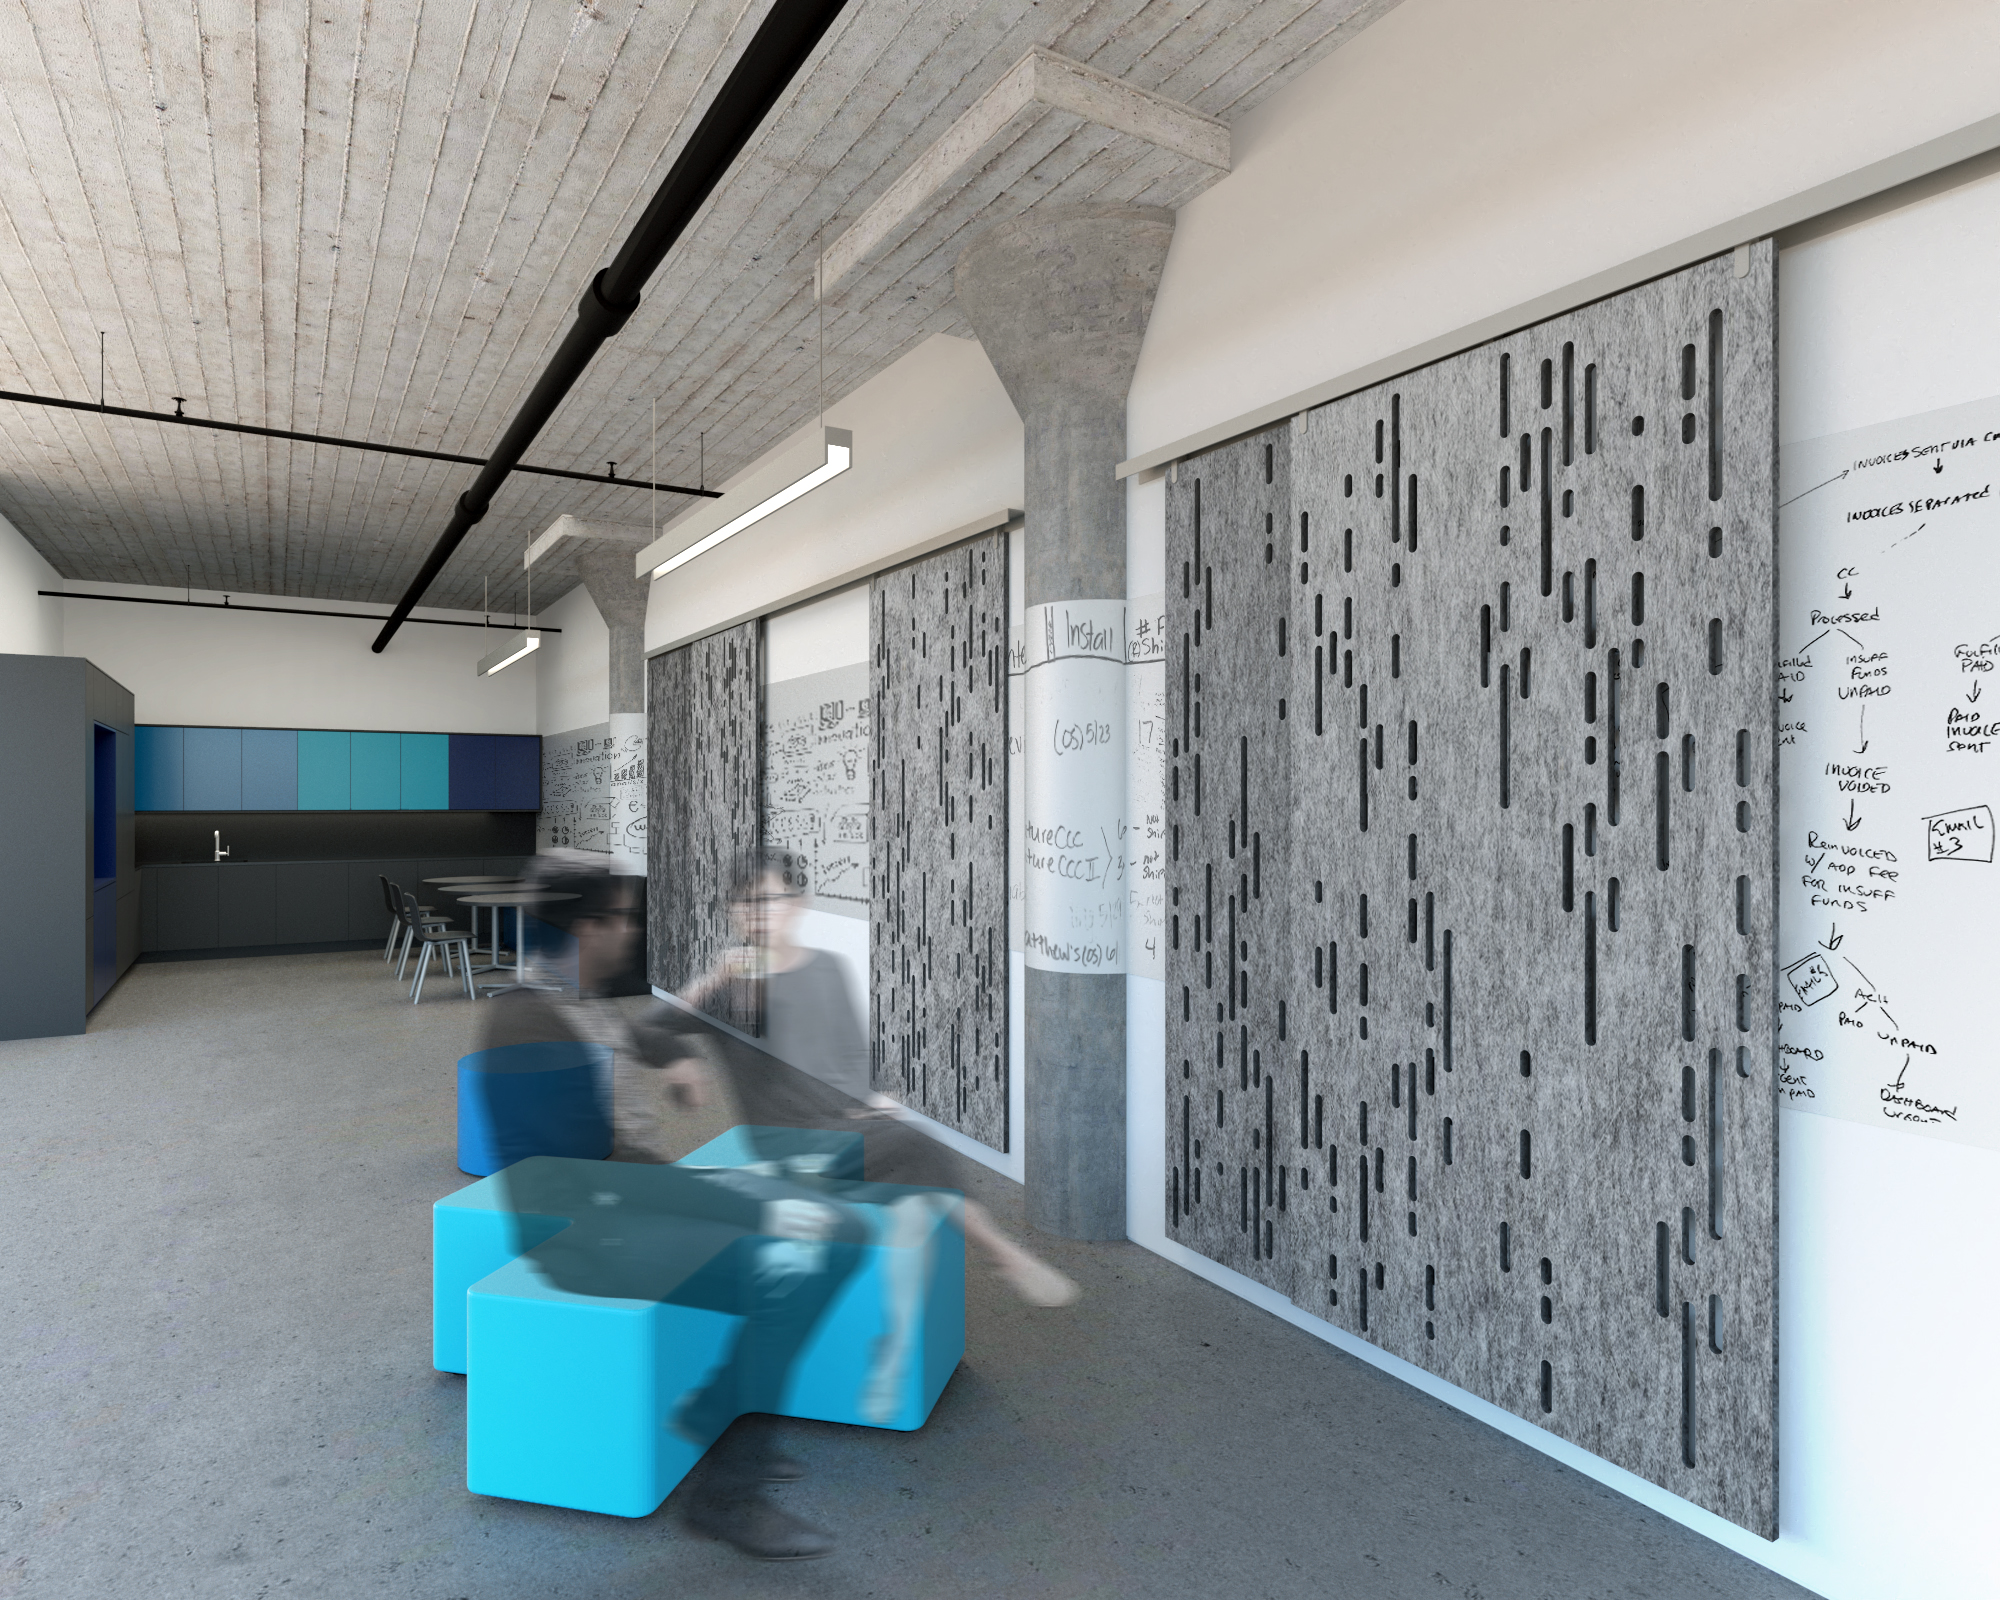 View of Collaborative Workspace - Commercial Interior Renovation